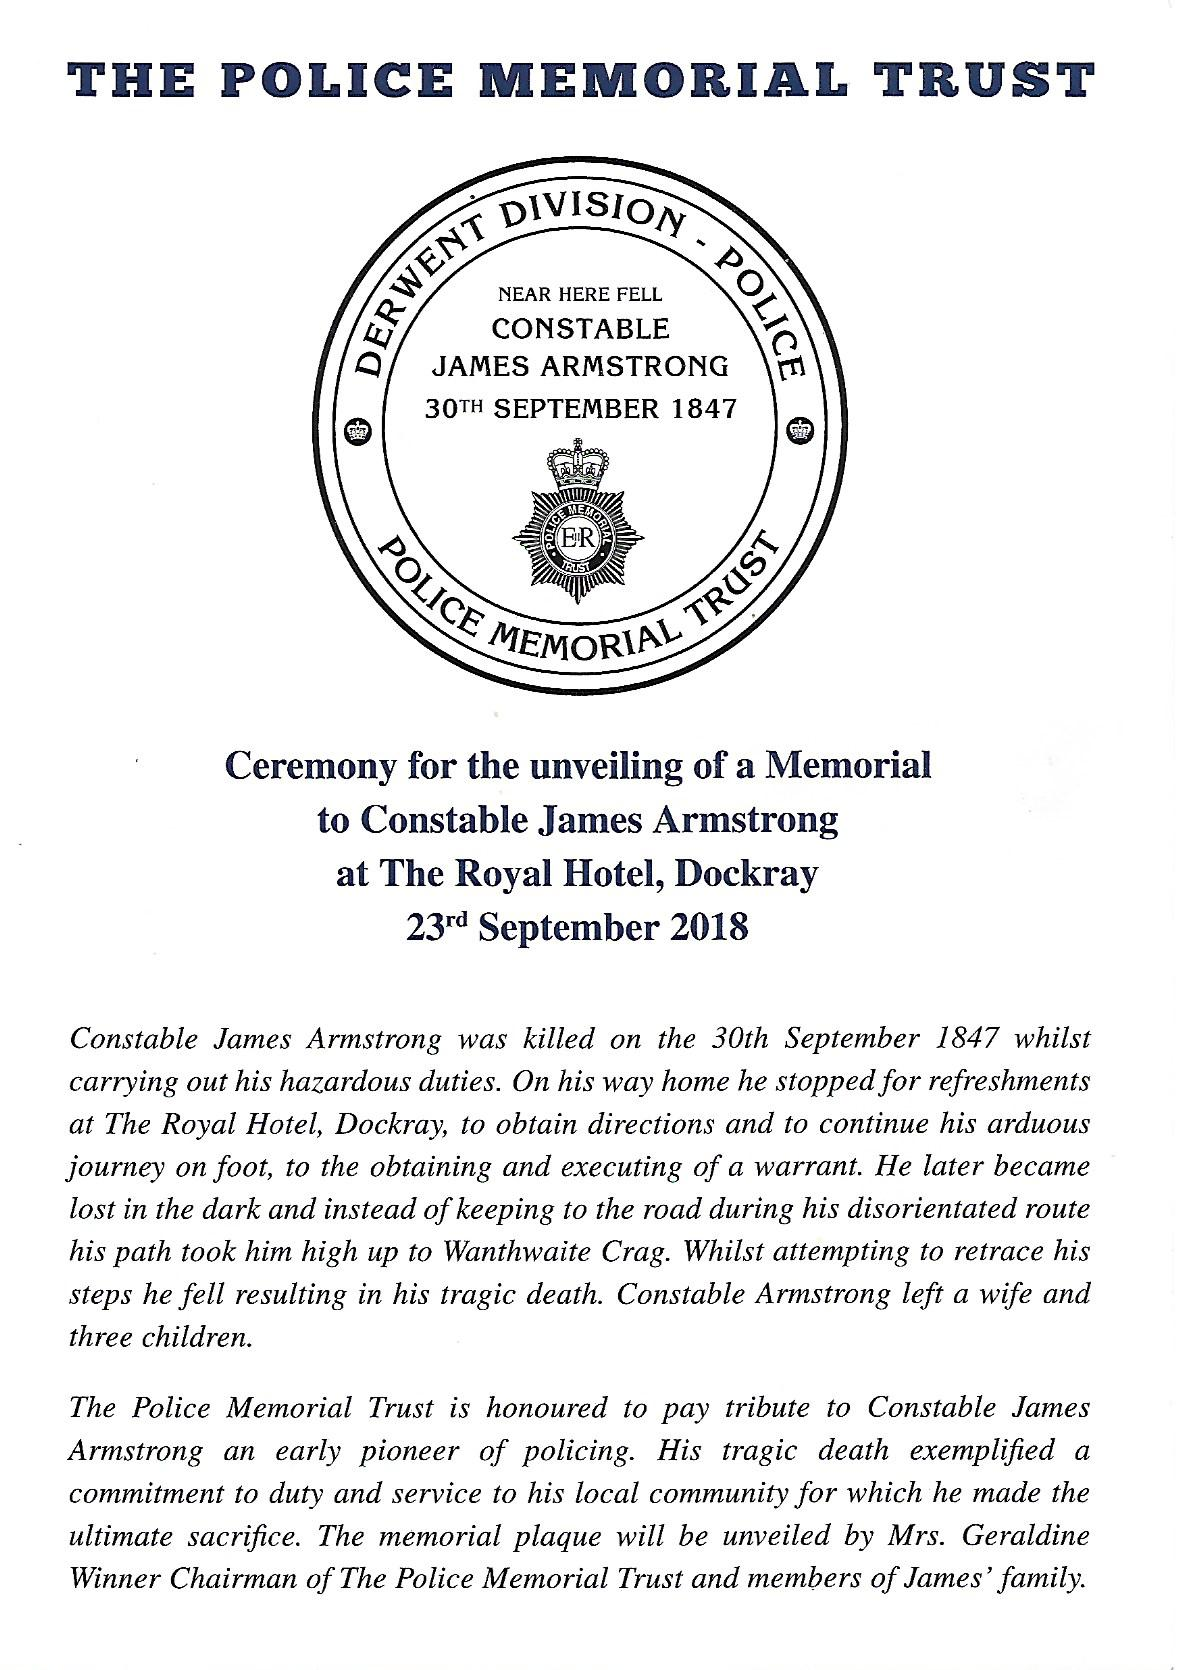 Ceremony for the unveiling of a Memorial to Constable James Armstrong programme 1